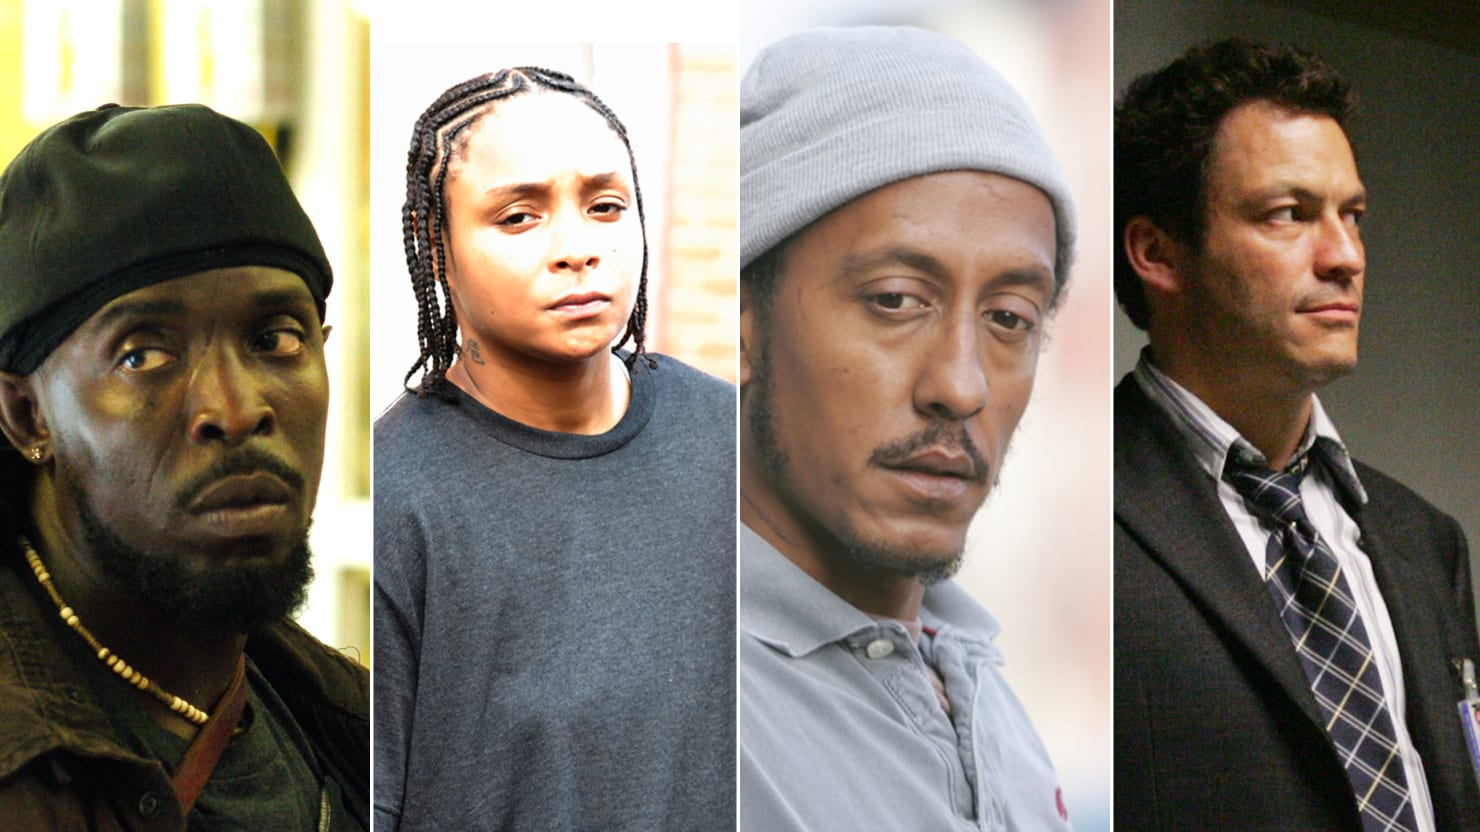 Idris Elba and More Stars of 'The Wire': Where Are They Now? (PHOTOS)